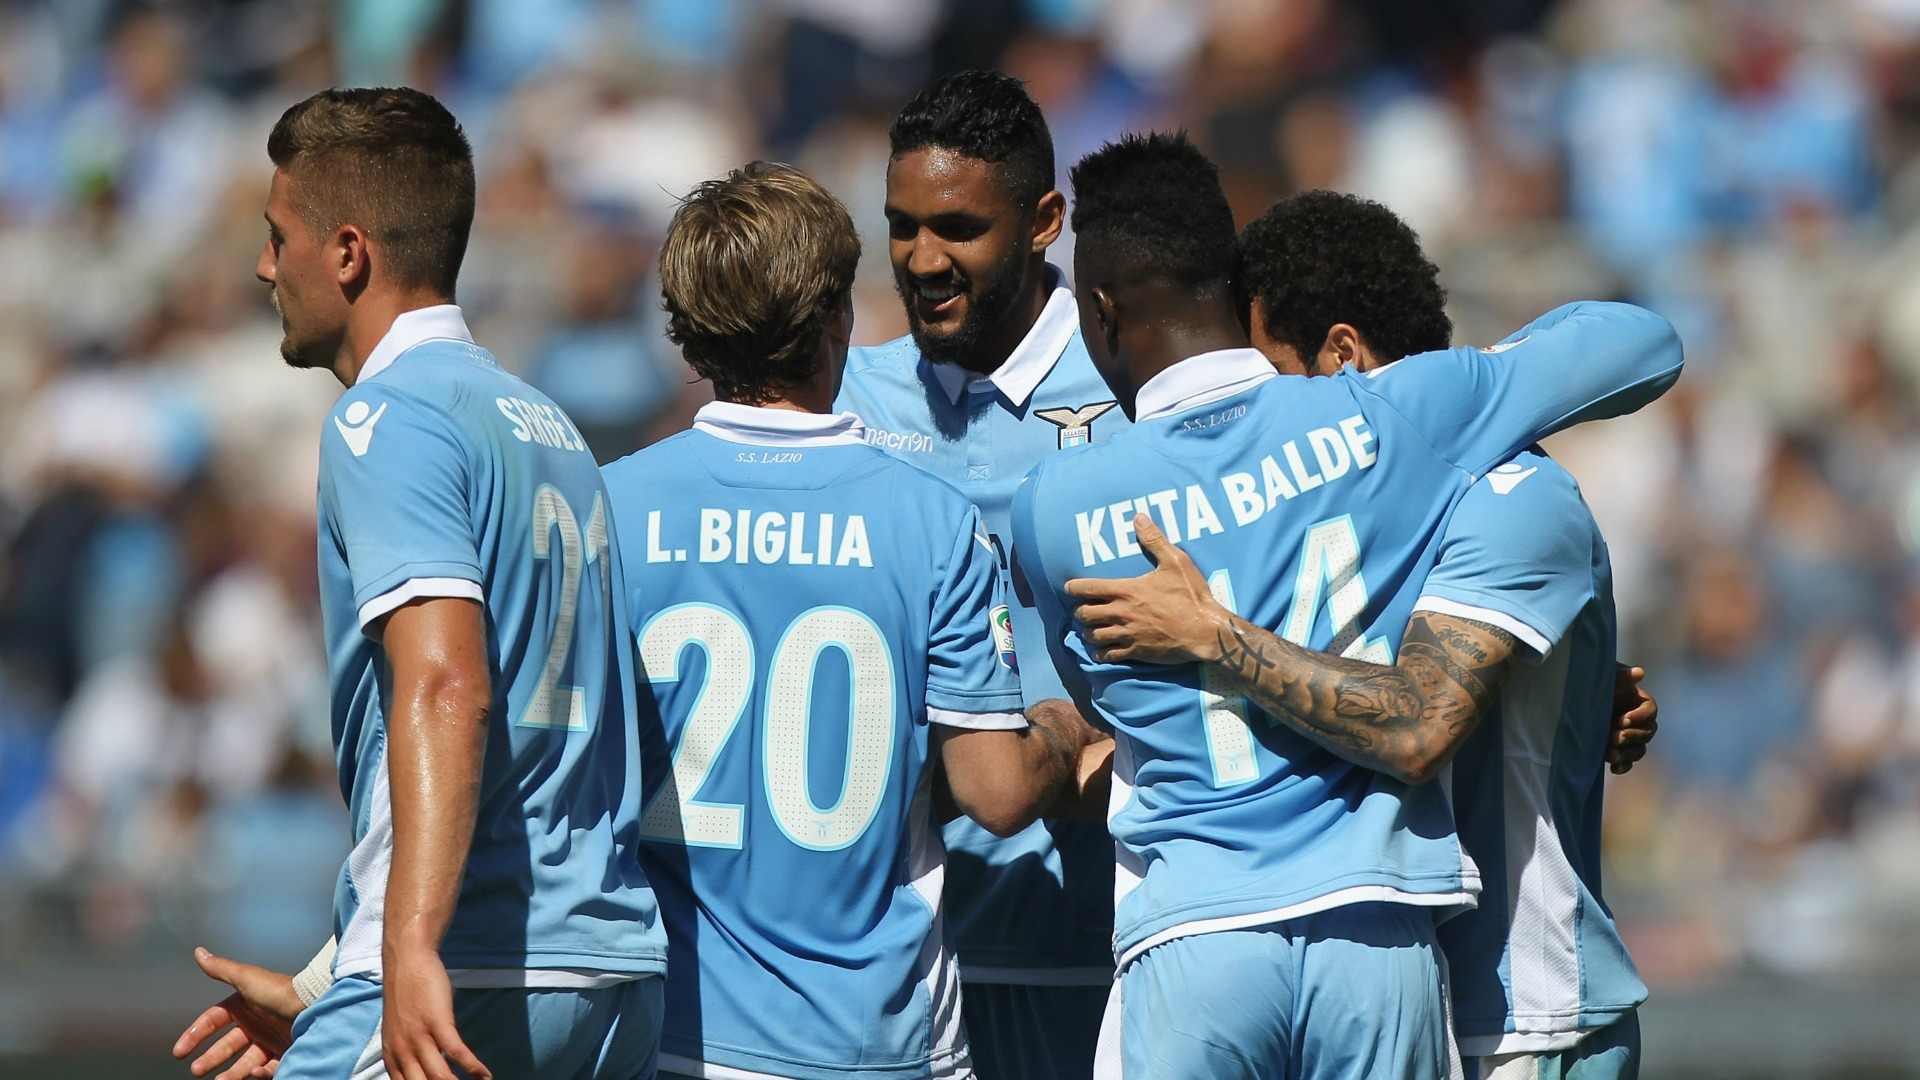 Lazio celebrating Lazio Sampdoria Serie A